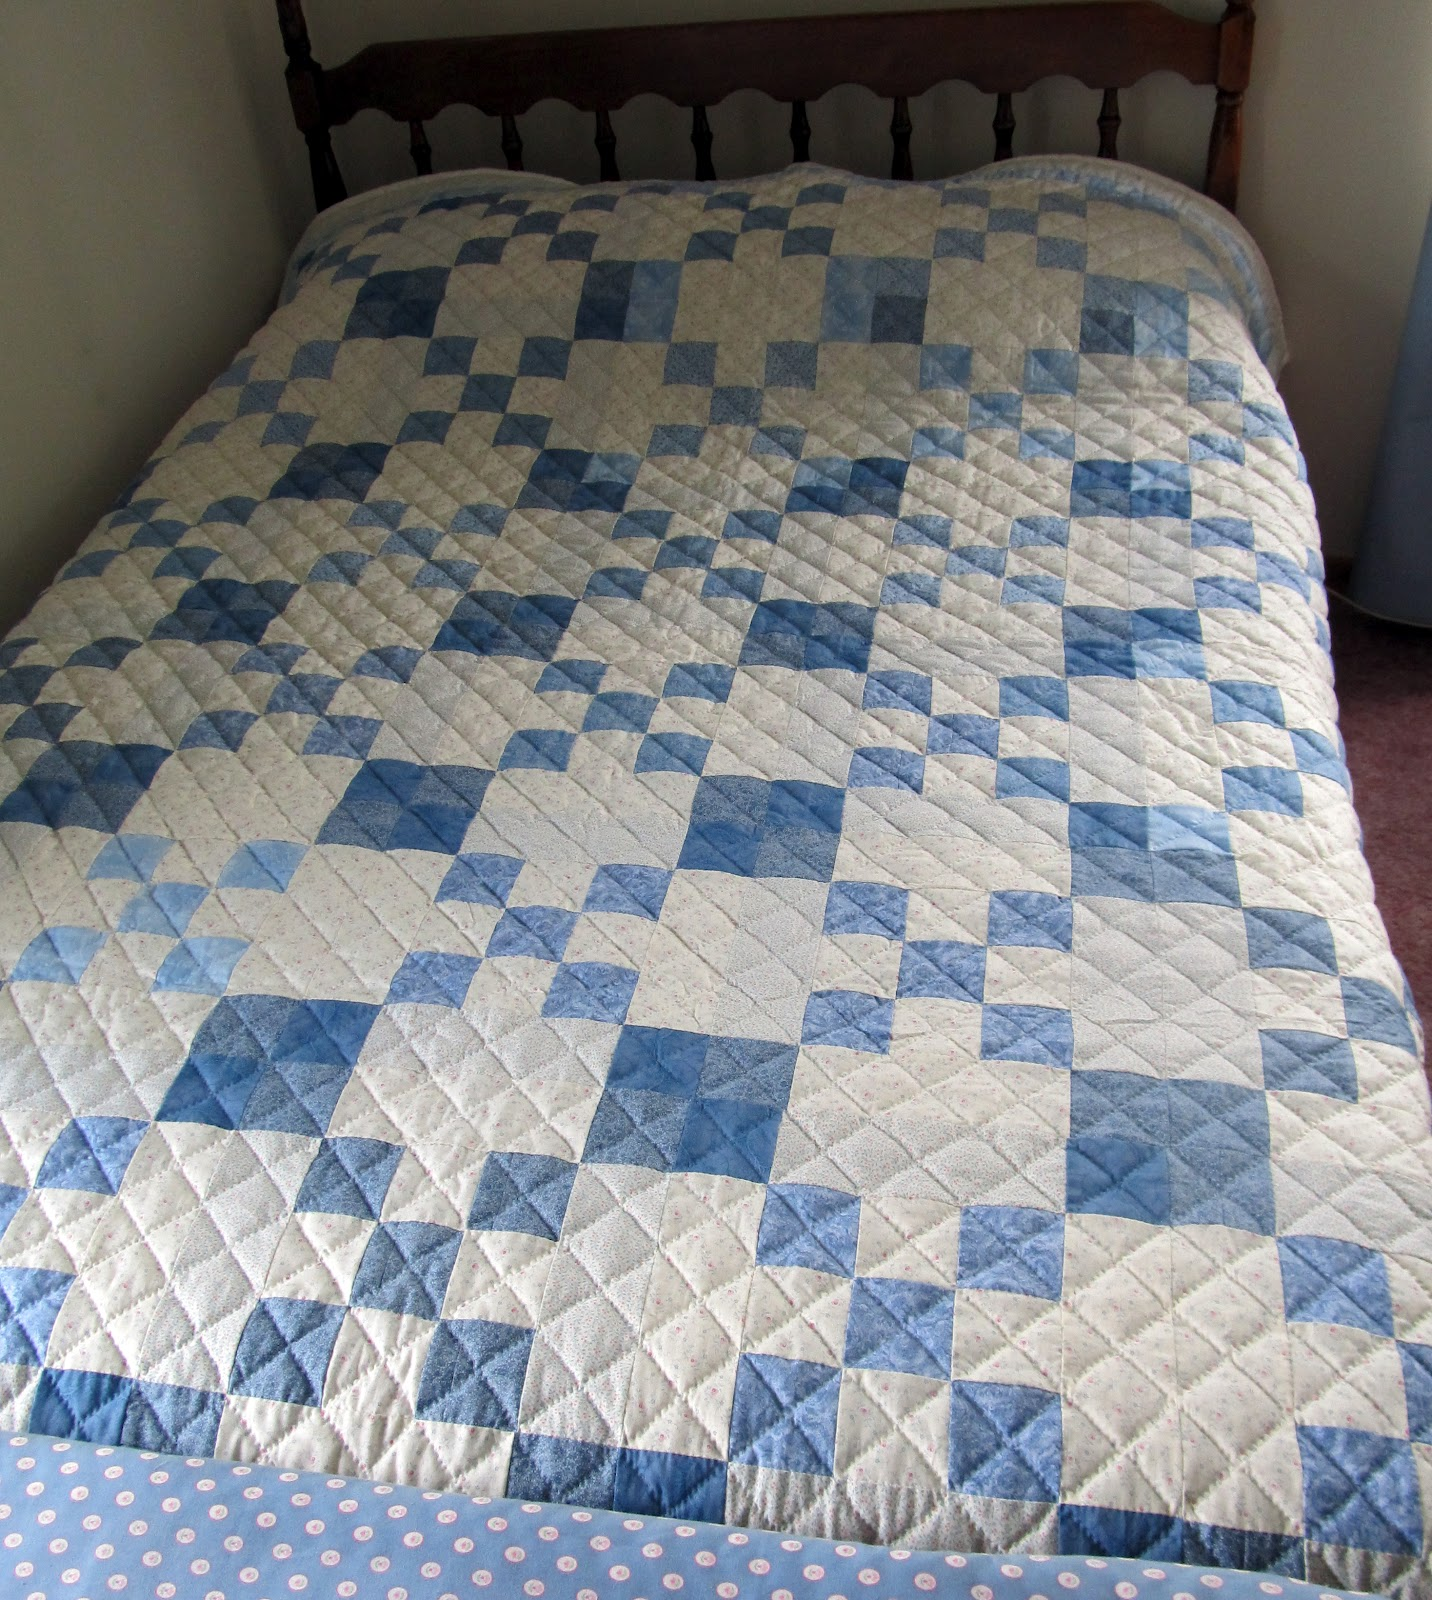 refreshes interlocking light pattern classic our an with leaf blue four stitching quilt pin in monochromatic